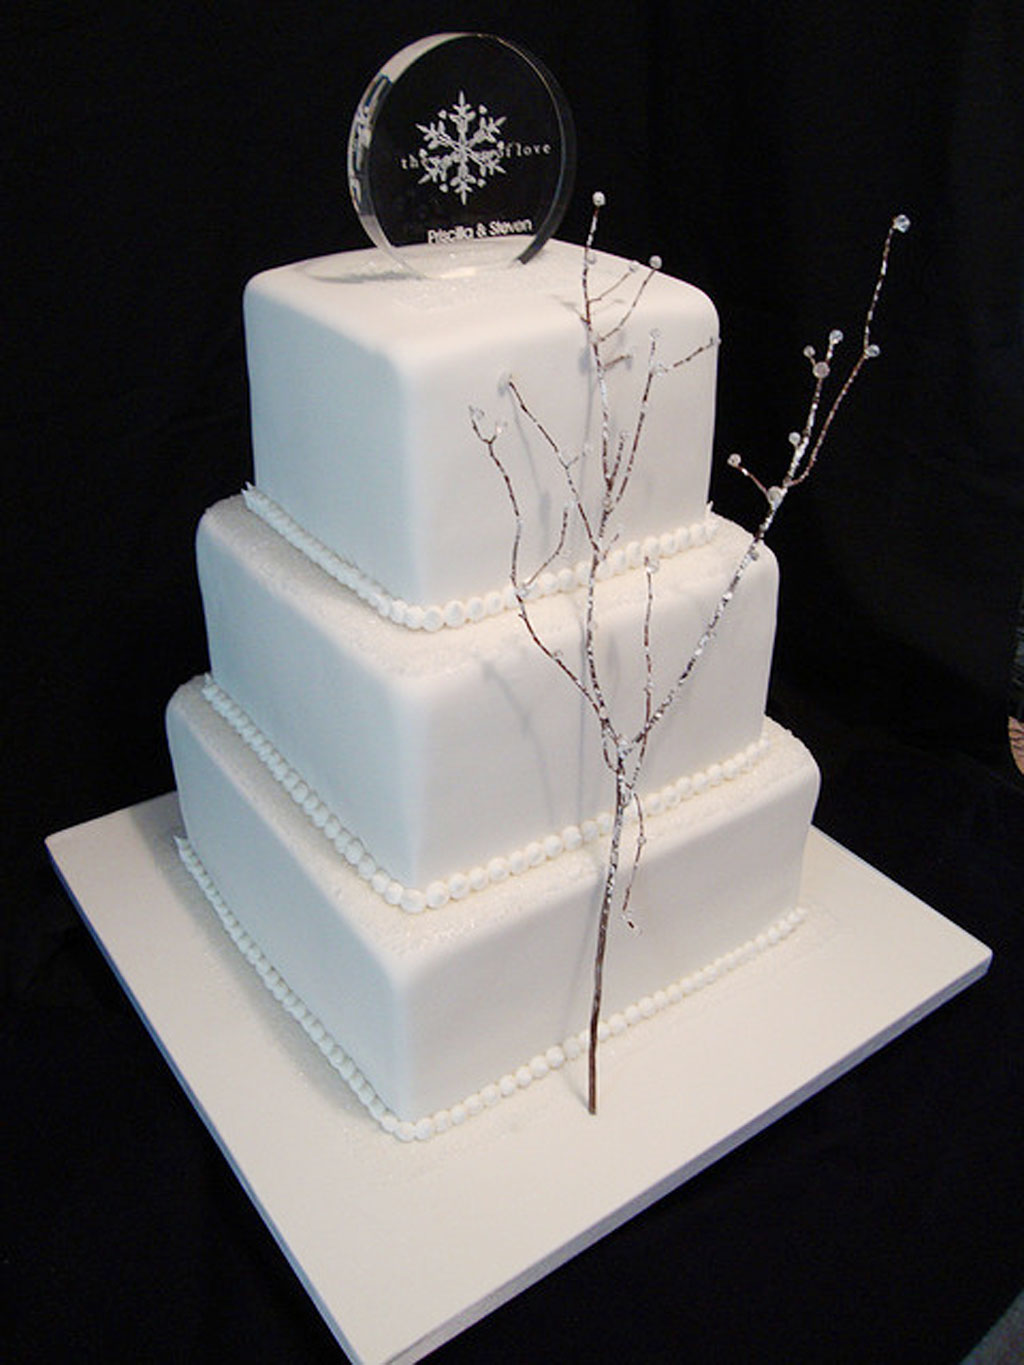 winter themed wedding cakes photo gallery winter themed wedding cakes photo wedding cake cake 27549